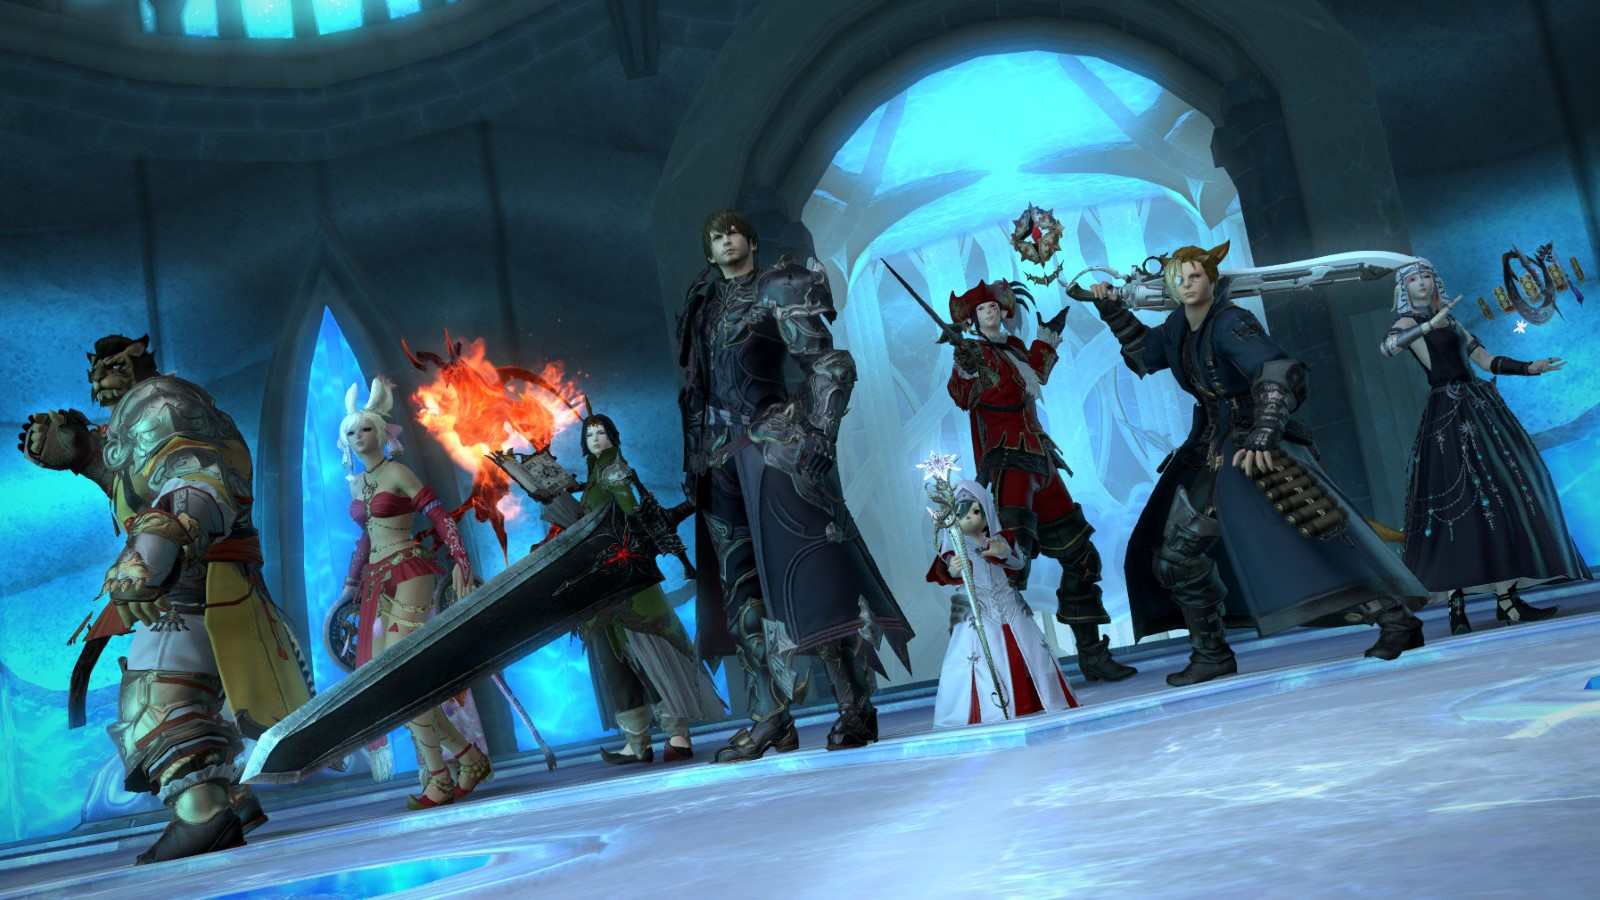 Ffxiv Alt Leveling final fantasy xiv is still the mmo to play | rock paper shotgun